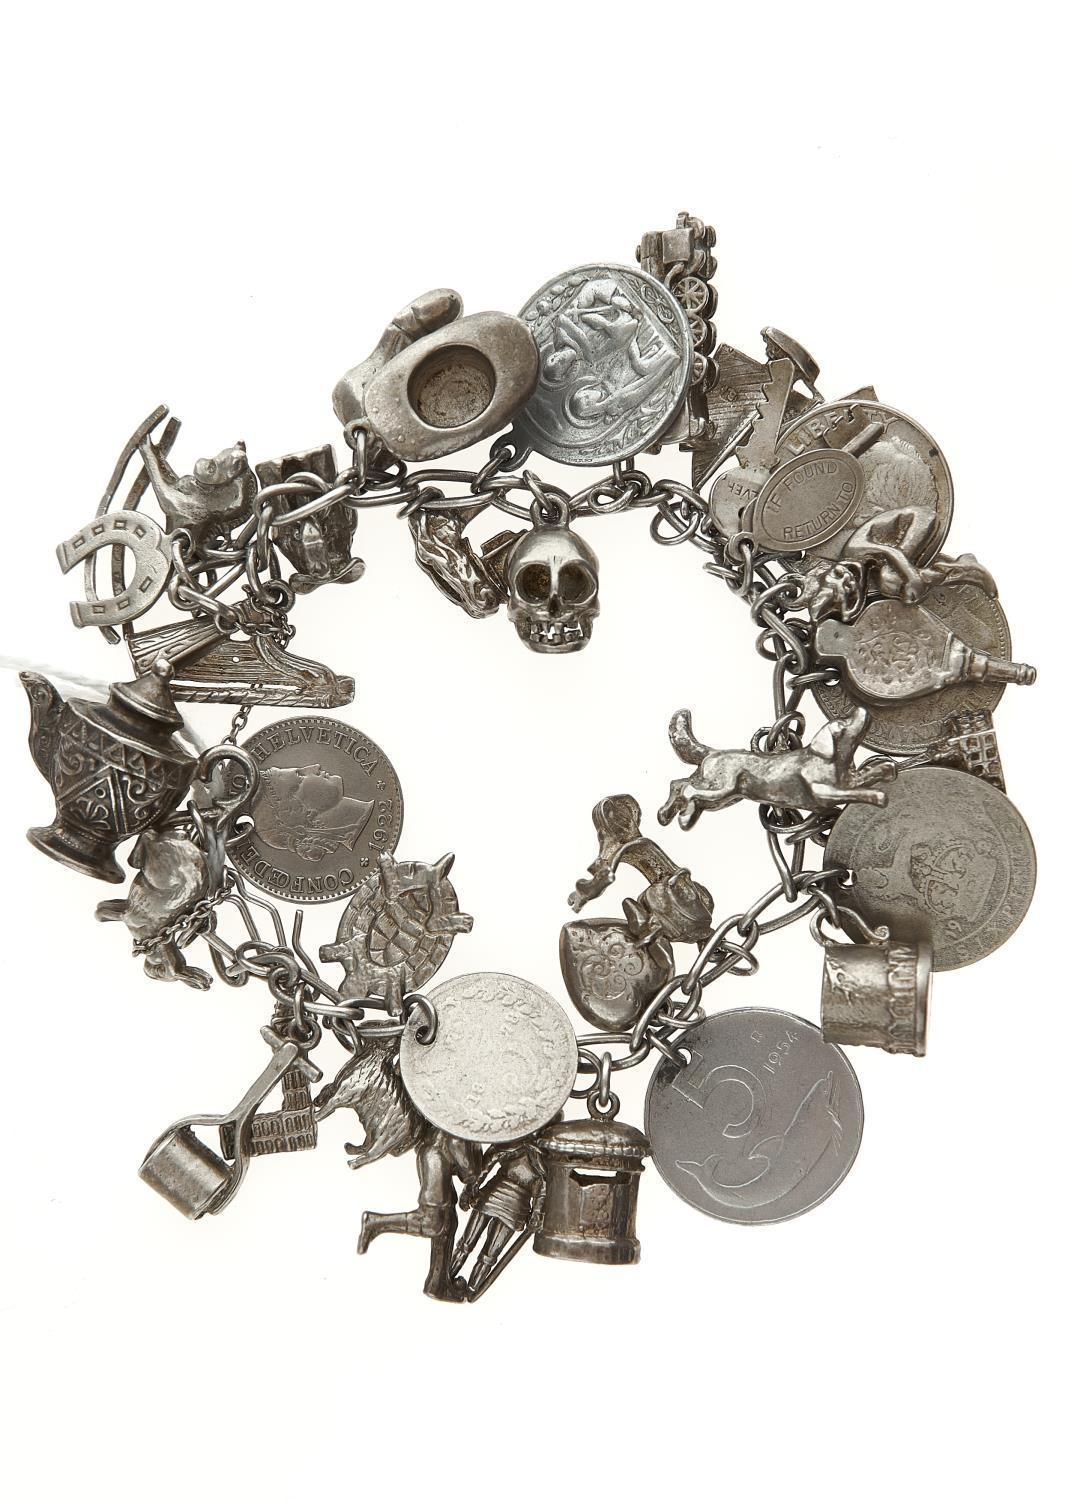 A SILVER CHARM BRACELET, APPROX 18CM L, 17.5G LIGHT WEAR